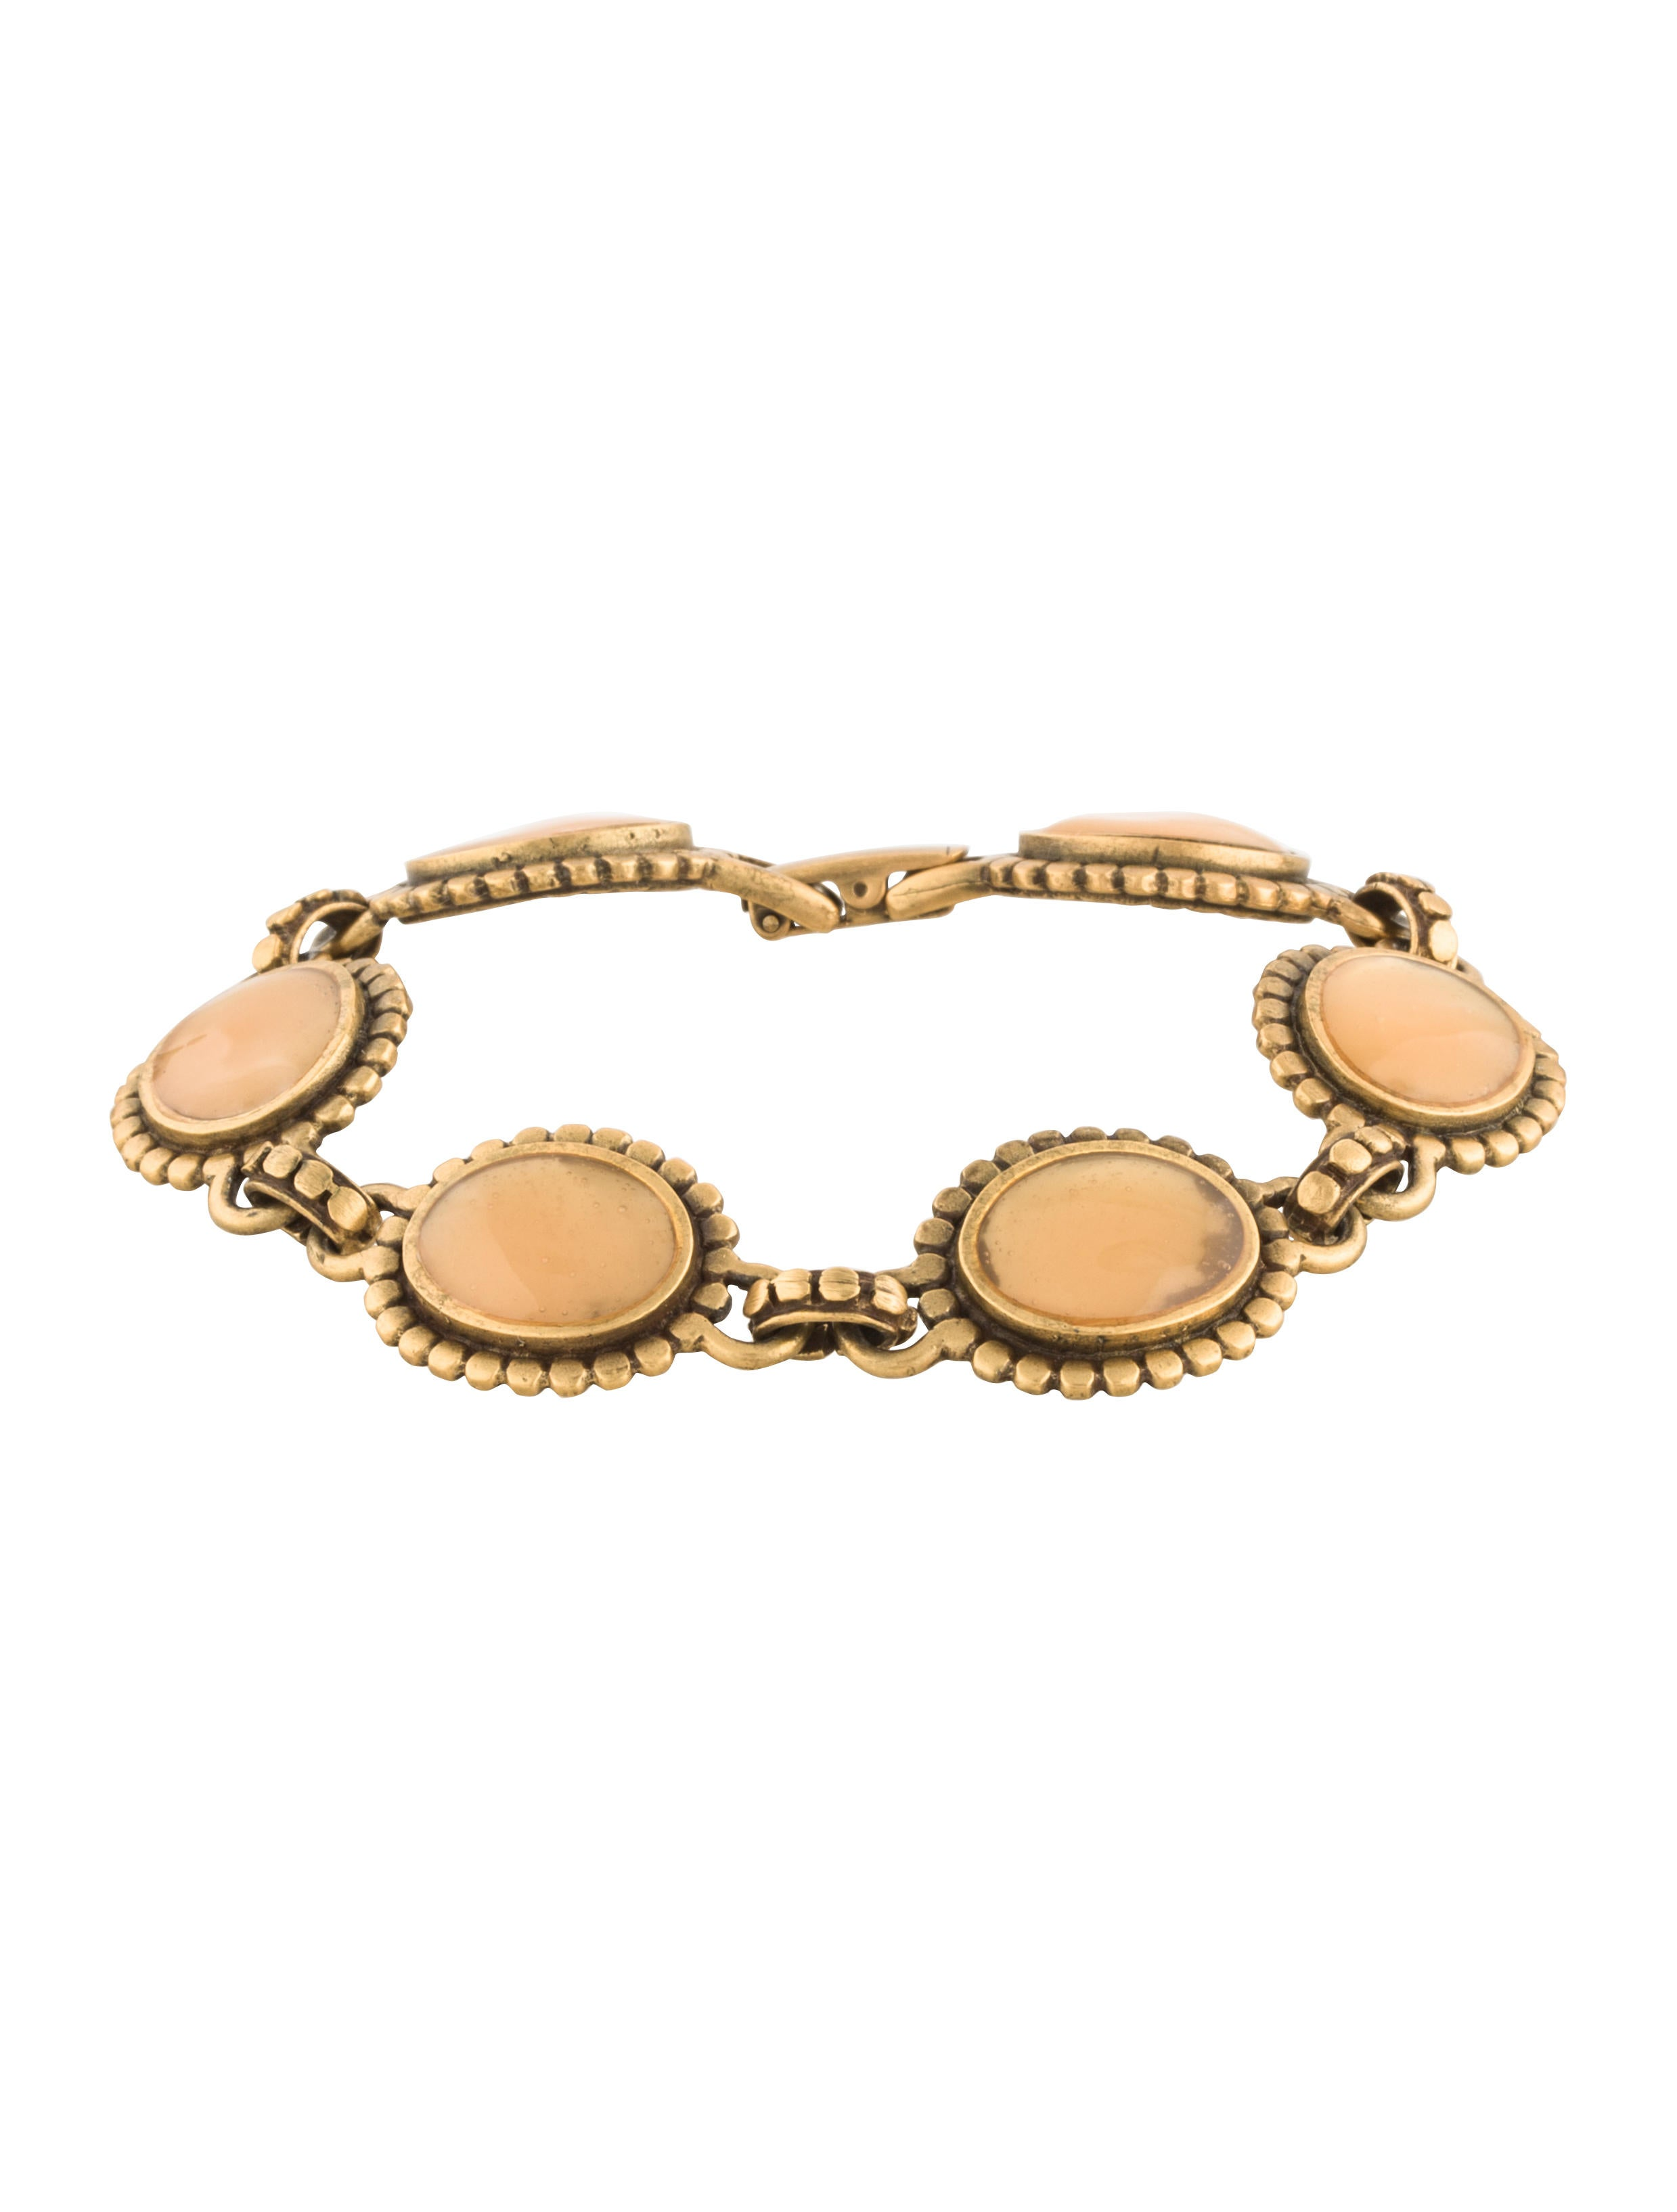 Yves saint laurent resin flower link bracelet bracelets yve66587 the realreal - Bracelet yves saint laurent ...